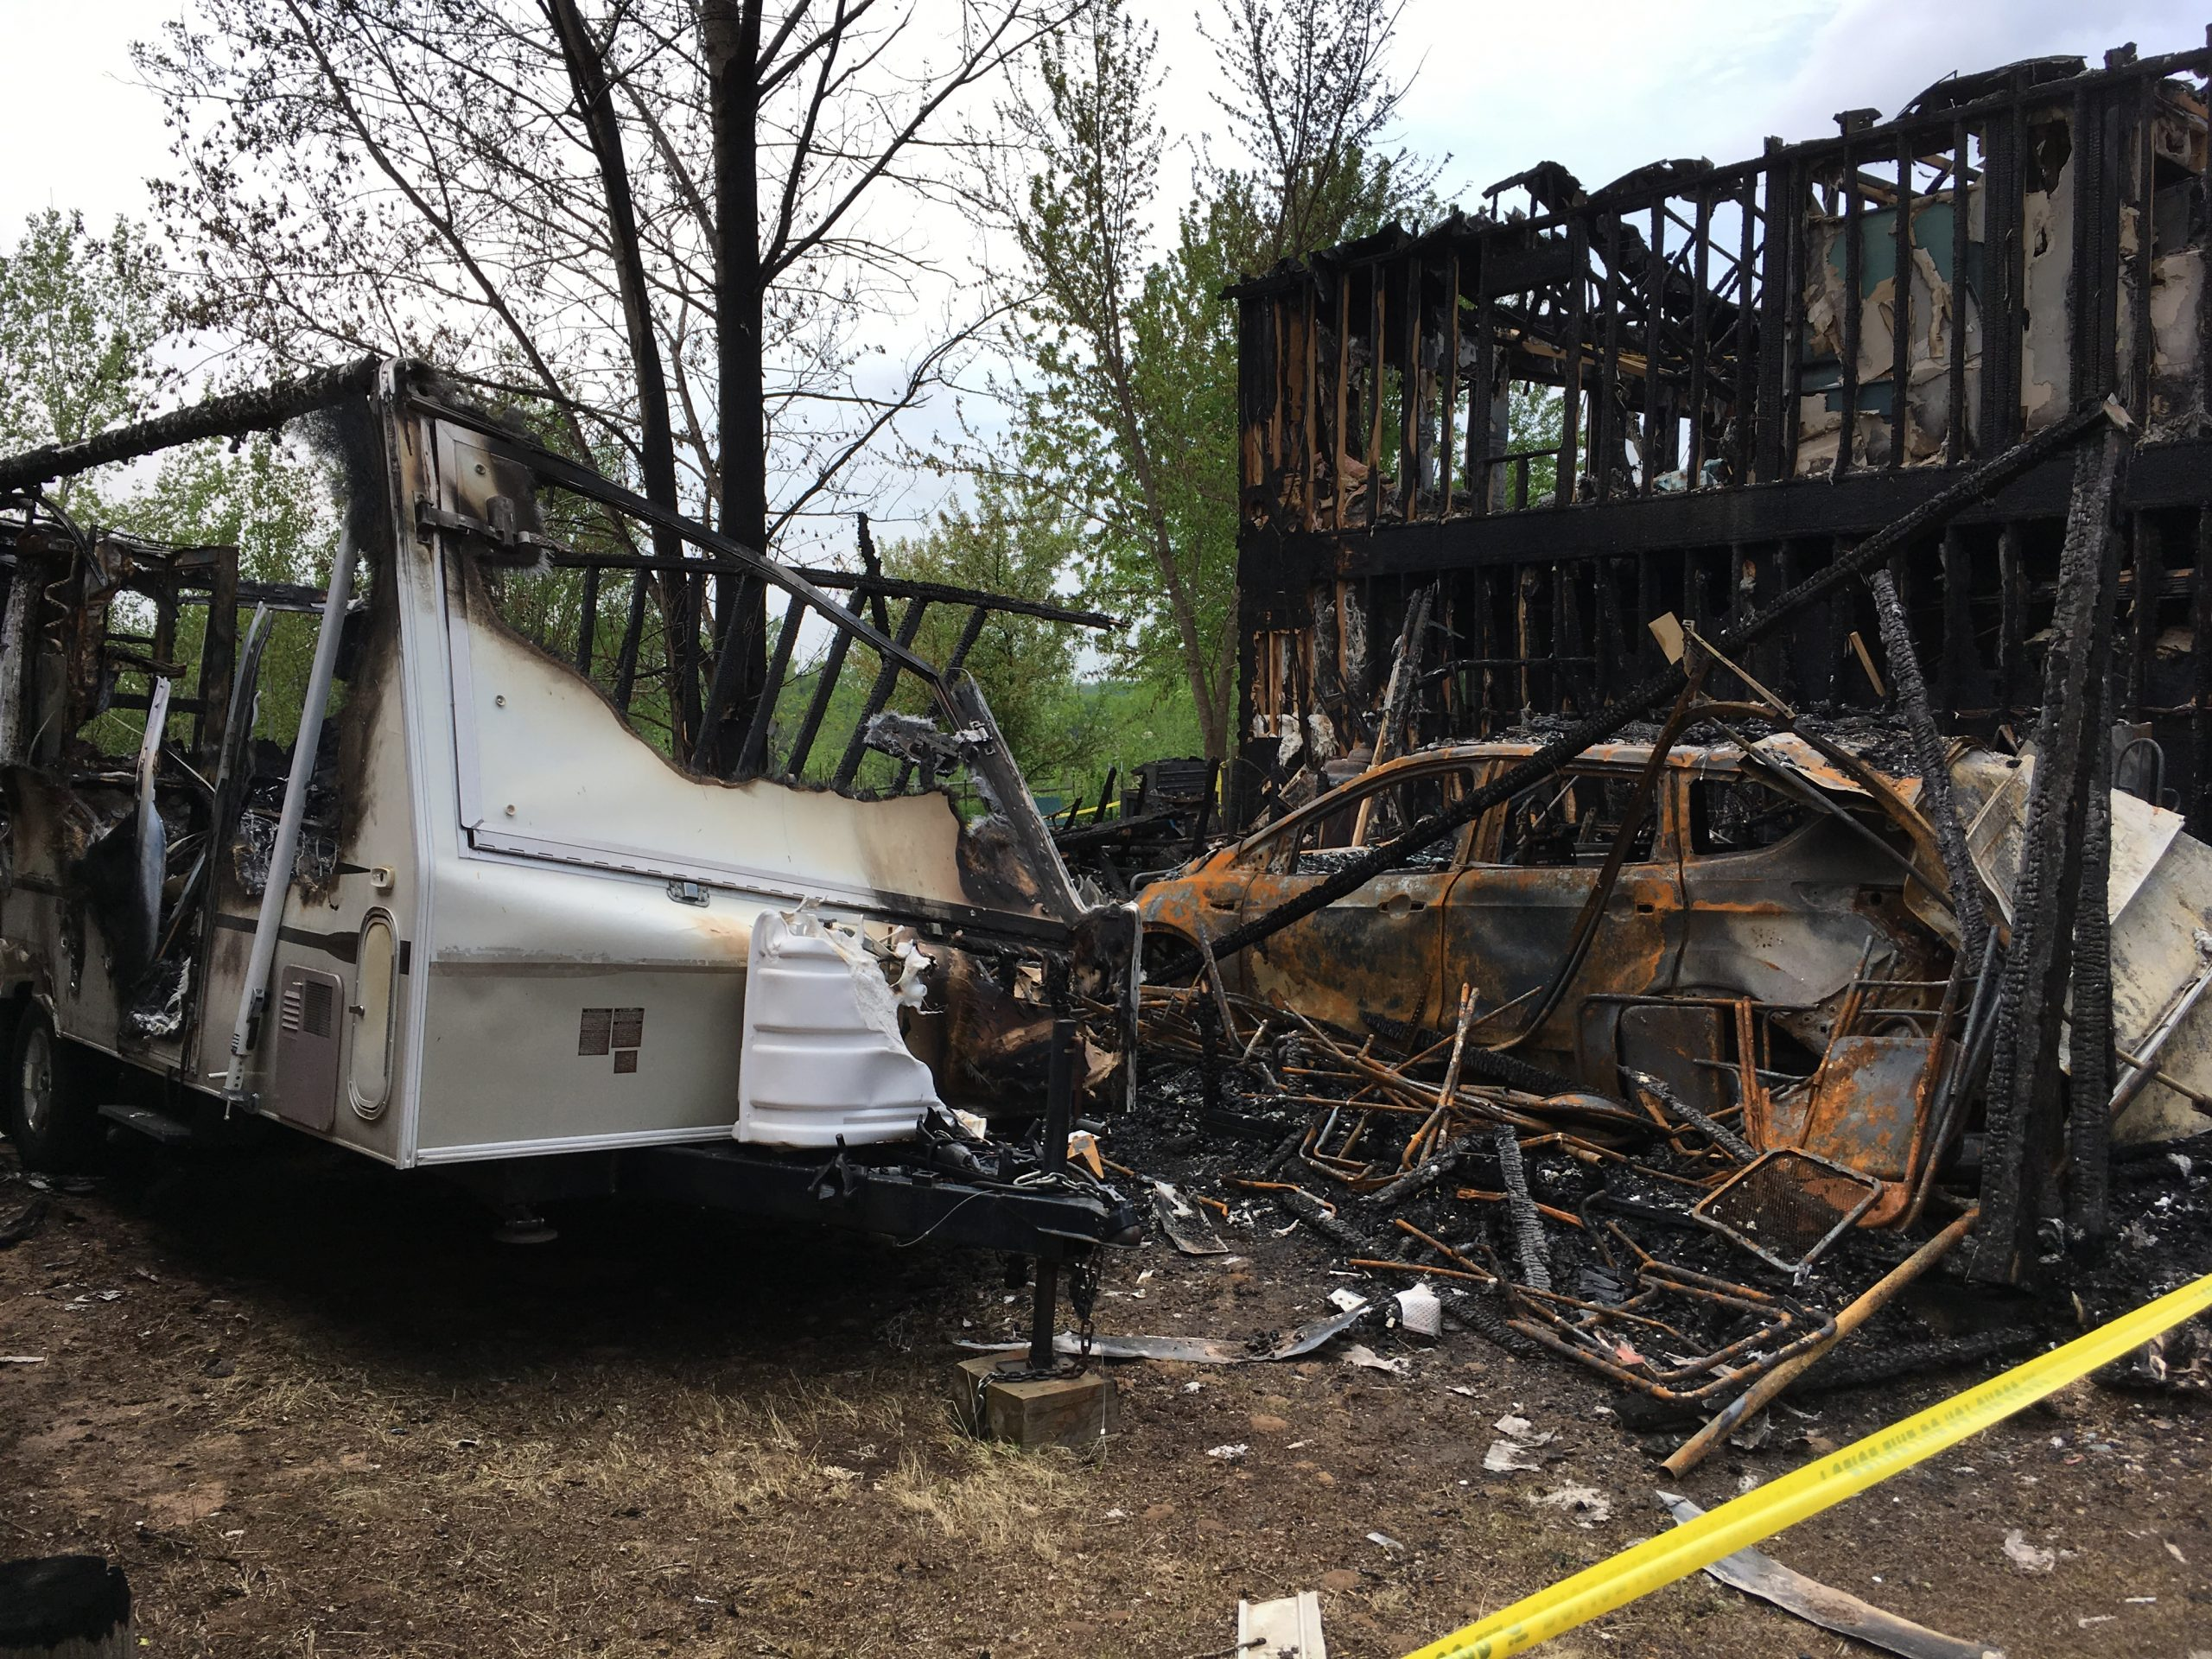 Community Offers Support For New London Family After Weekend Fire Takes Their Home